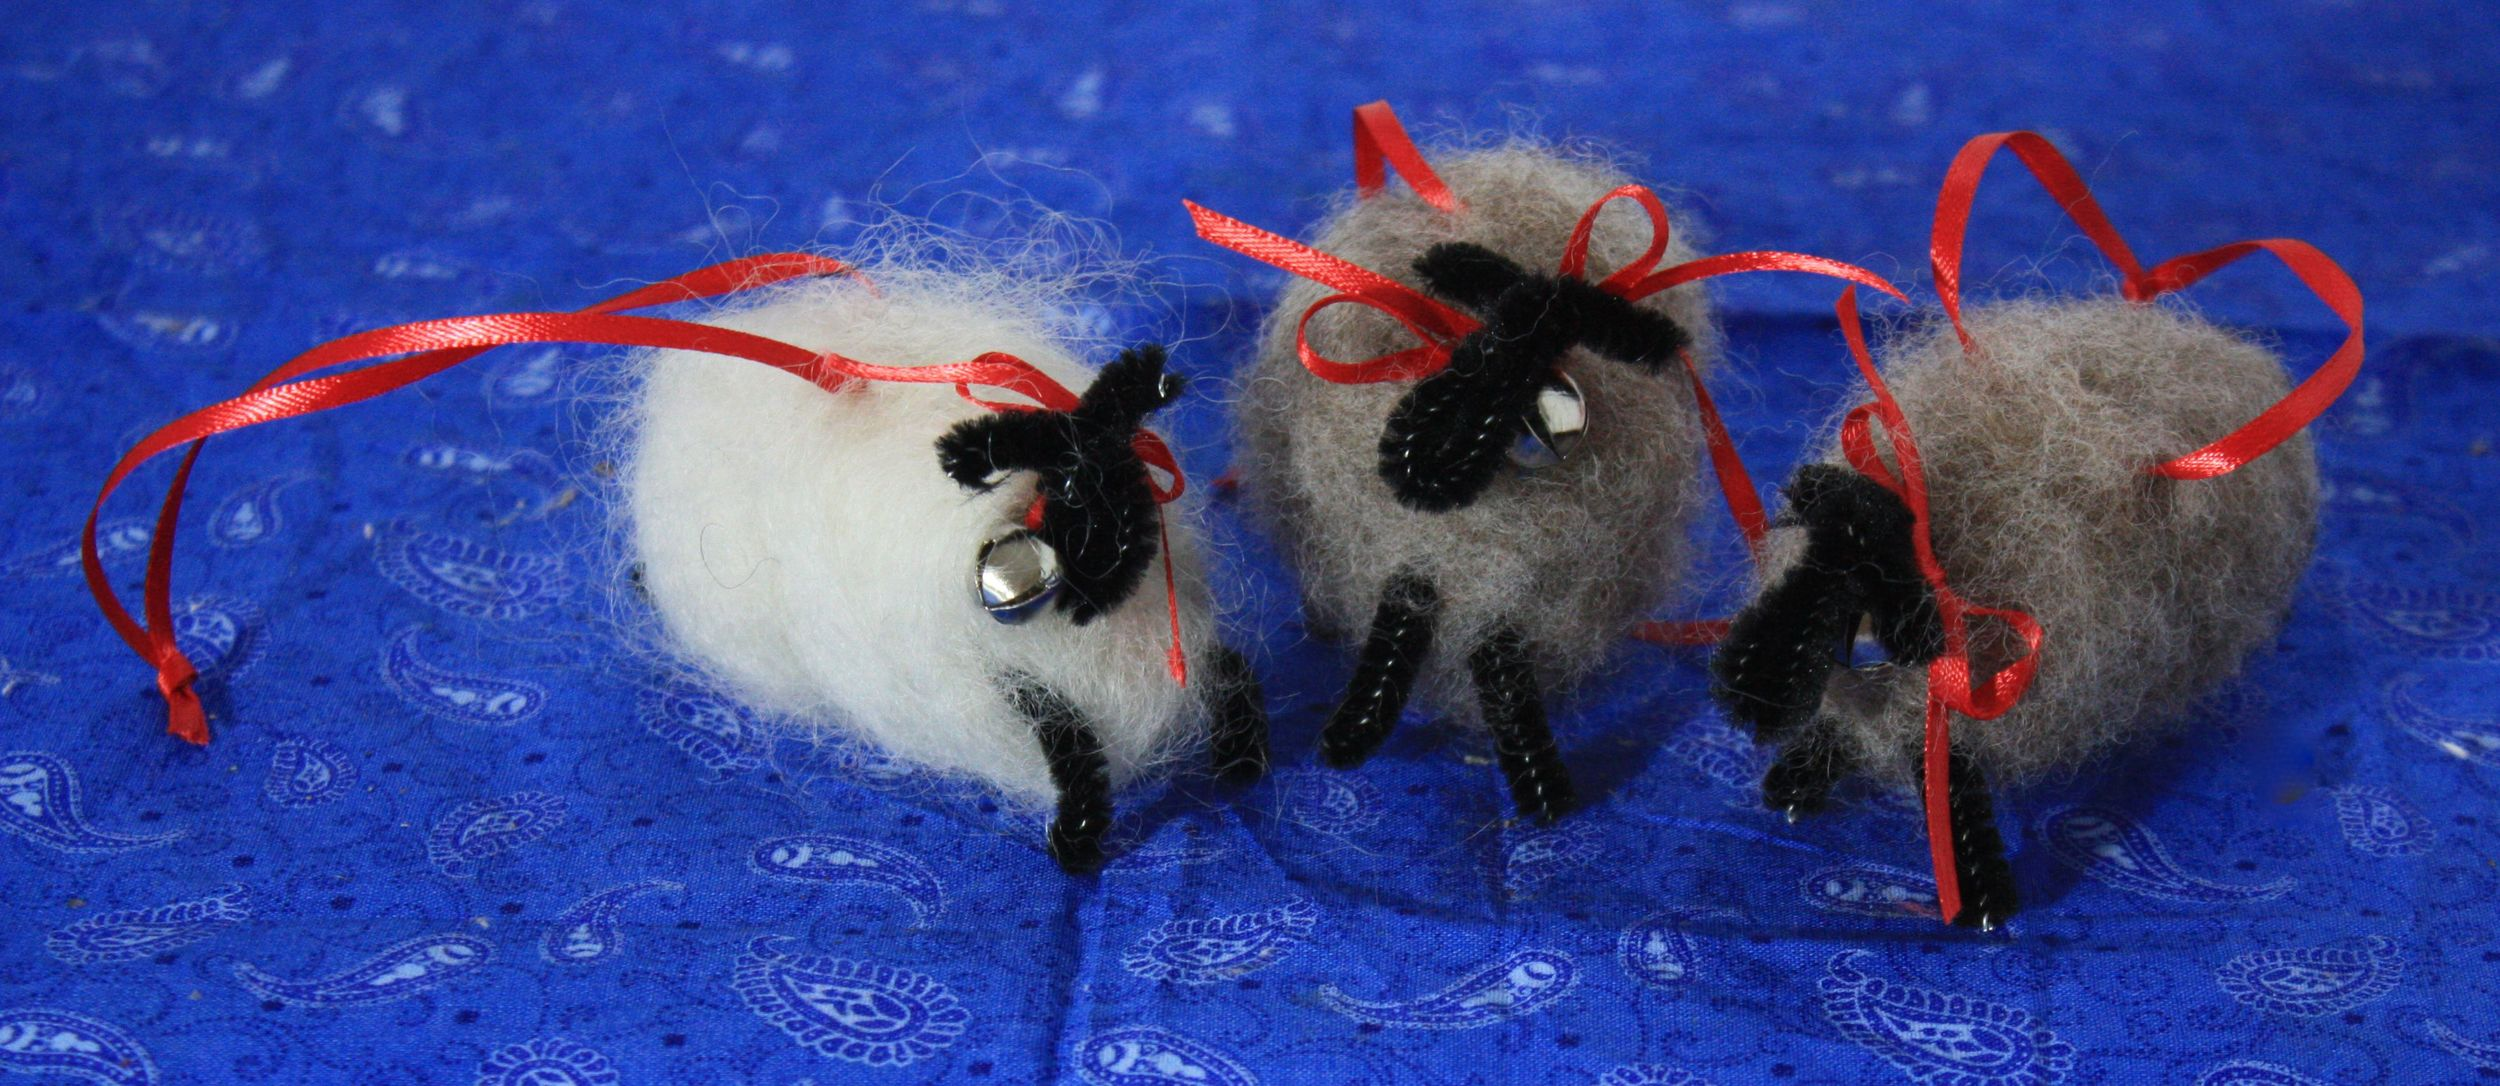 Felted sheep ornaments purchased from our friend Pam Kleppel of Longfield Farm at the Octagon Barn Market.